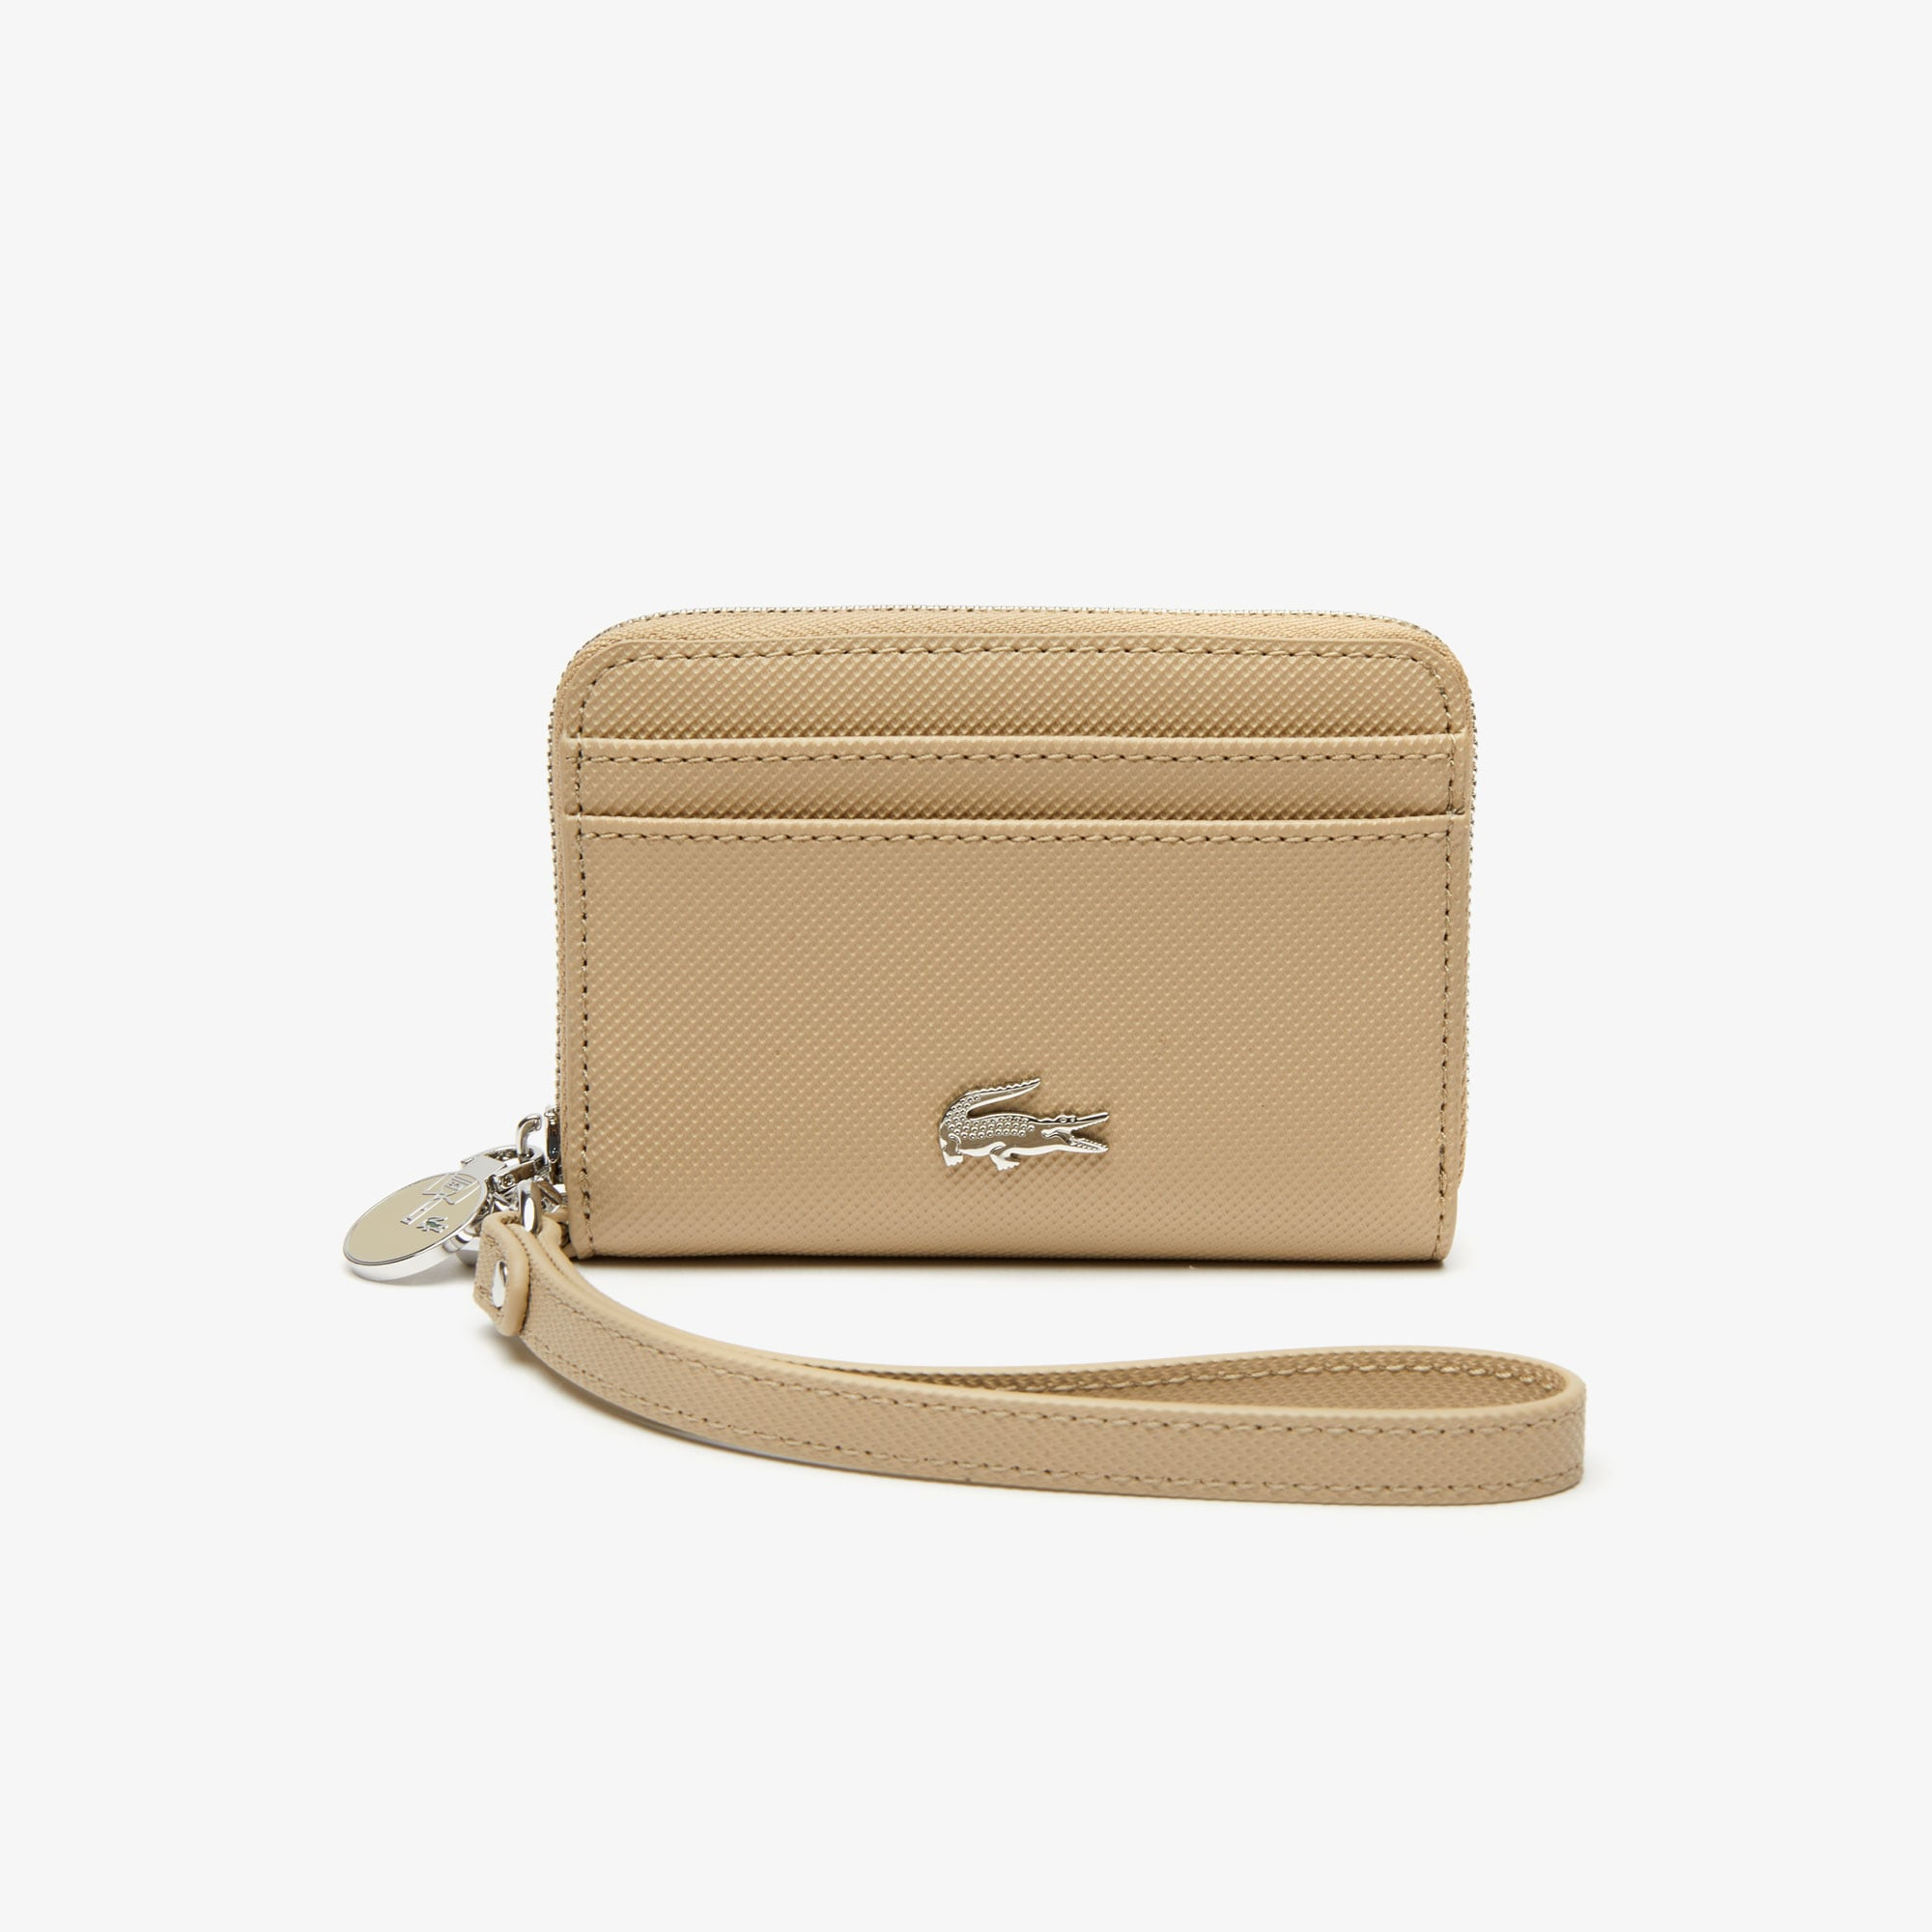 Women's Daily Classic Small Coated Piqué Canvas Zip Wallet